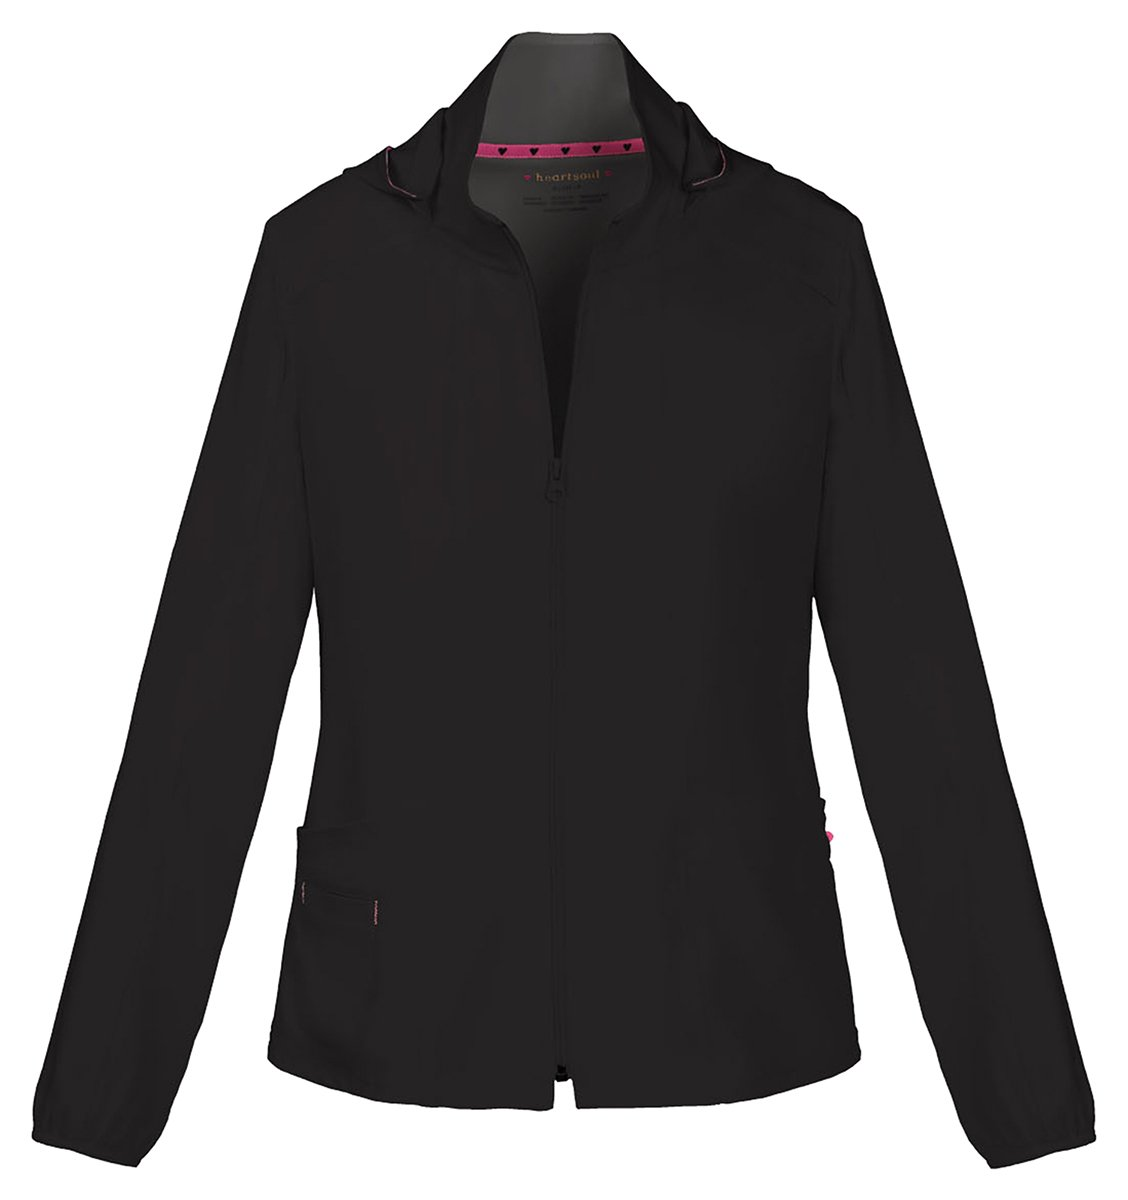 HeartSoul Women's Warm-Up Detachable Hooded Jacket_Black_Large,20310